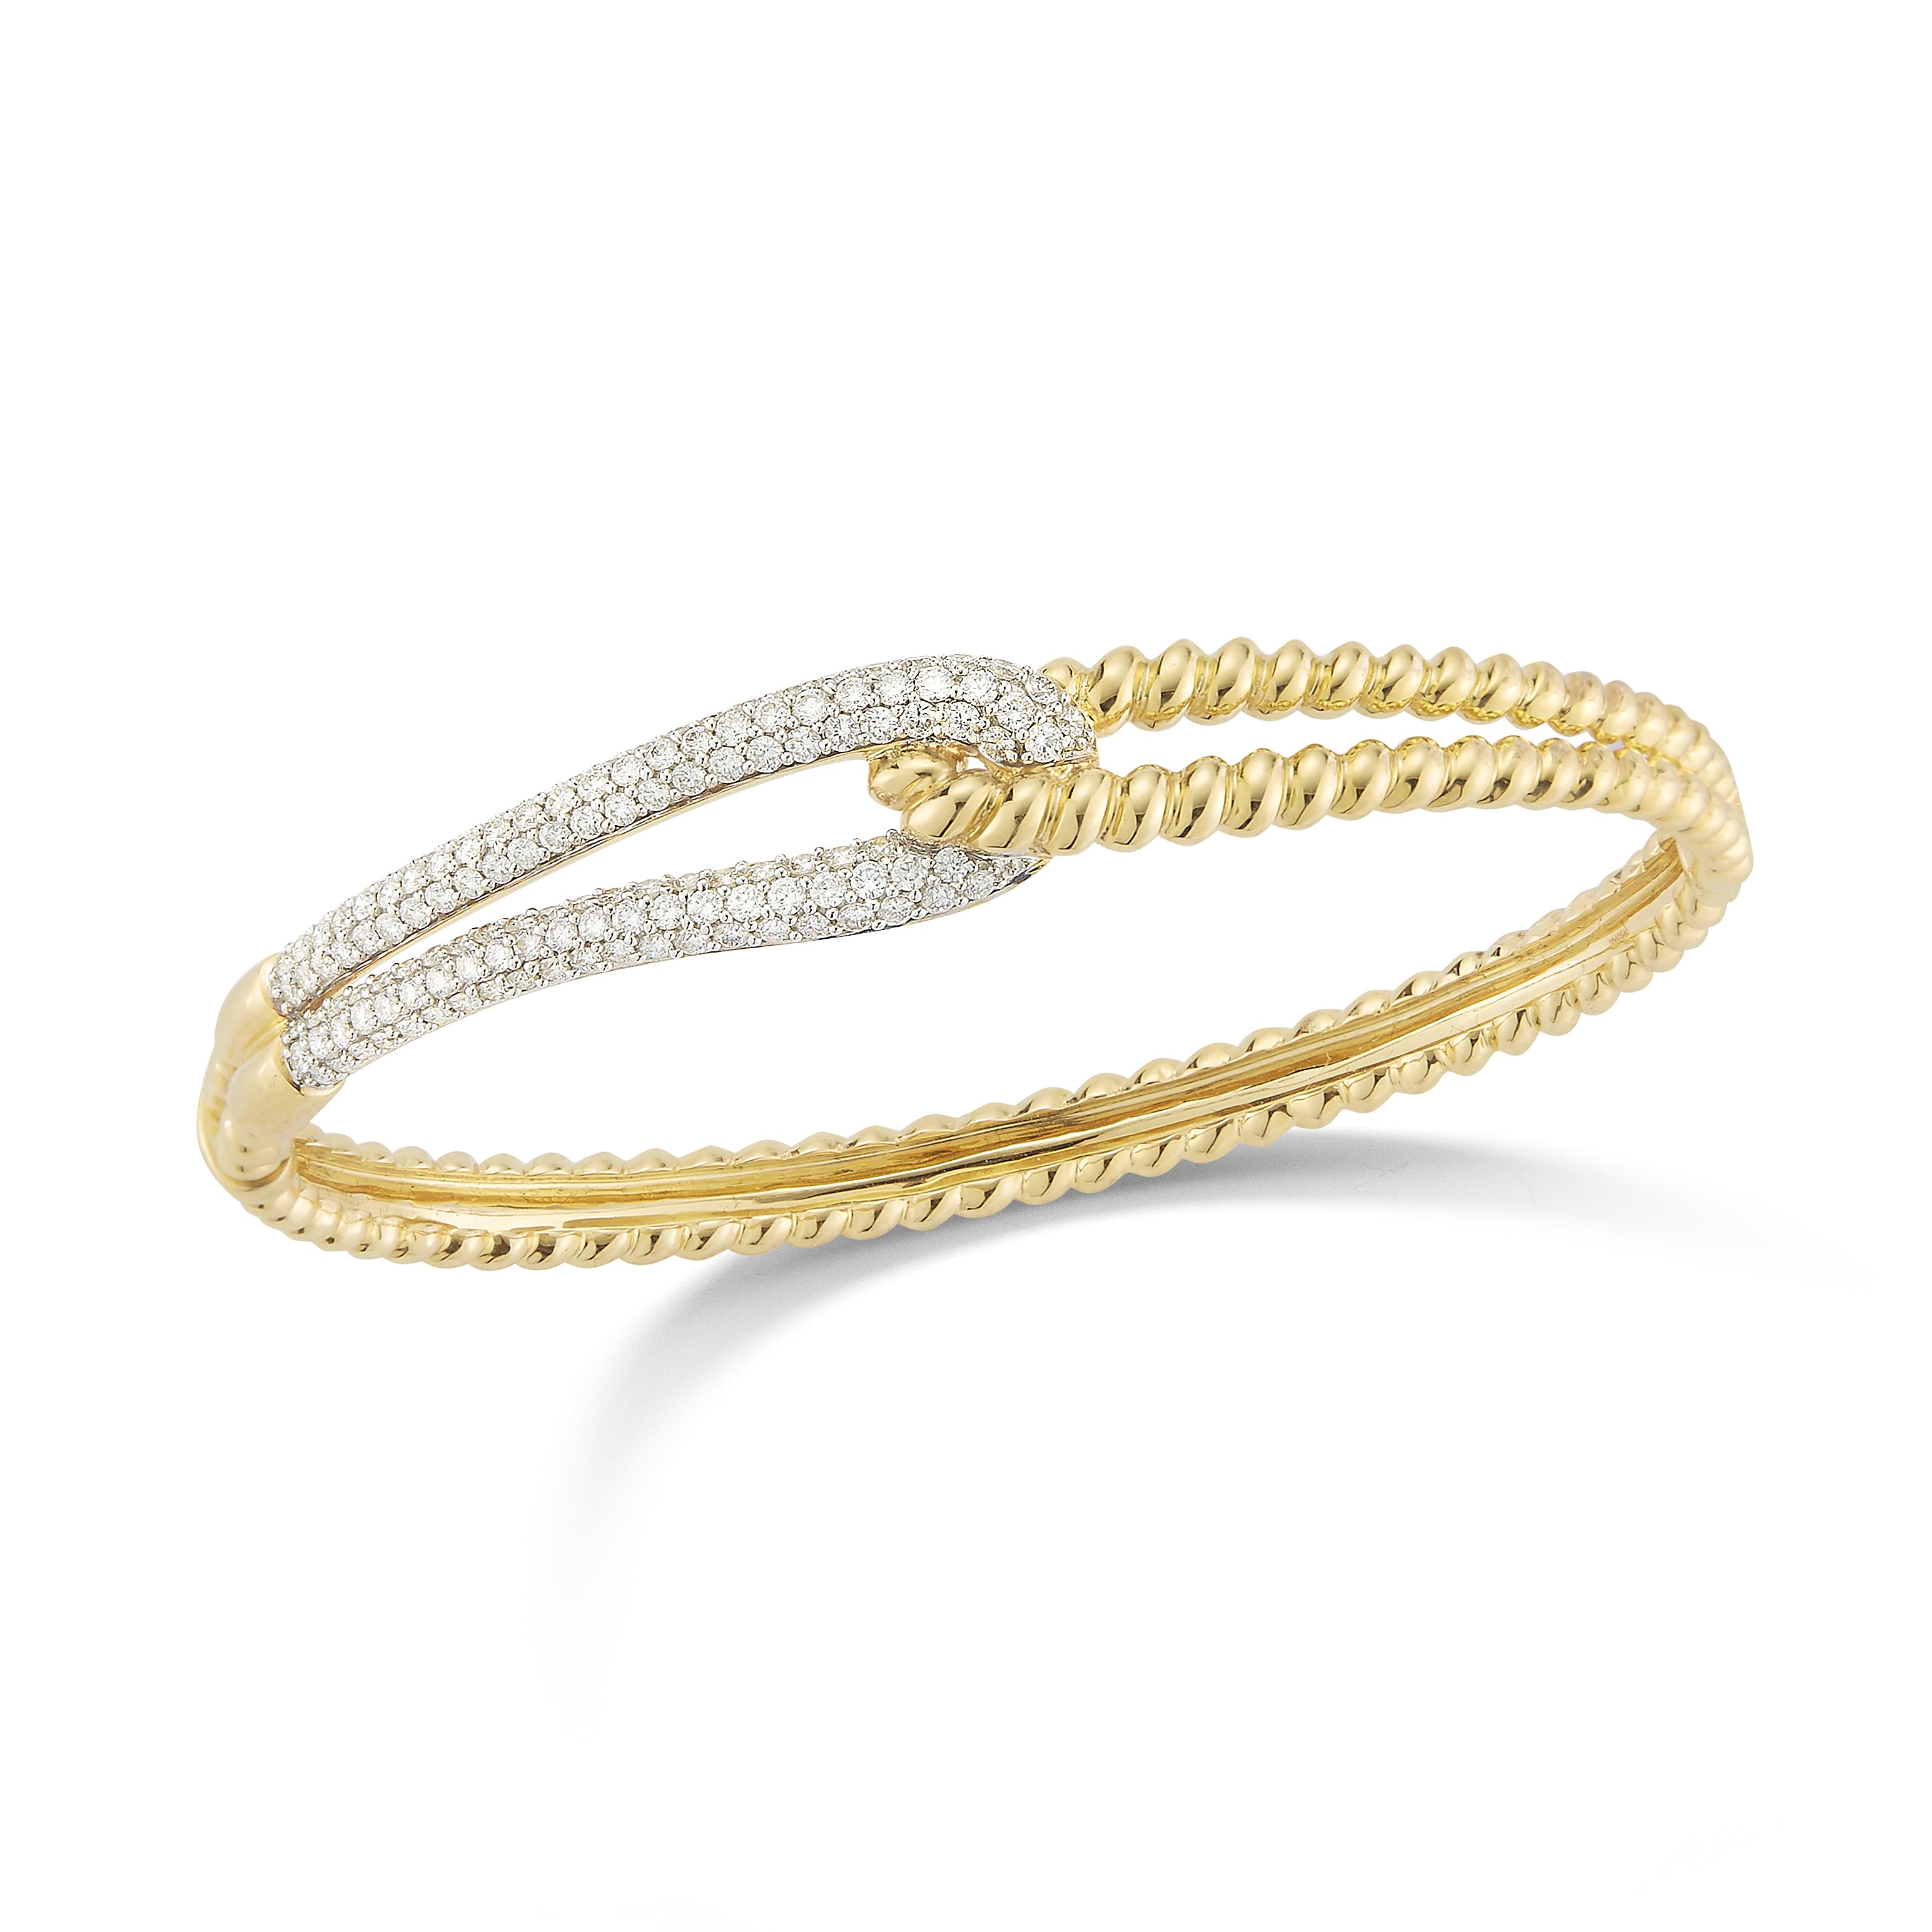 stephen yellow bangles product wiseley karat diamond rose copy bangle white gold